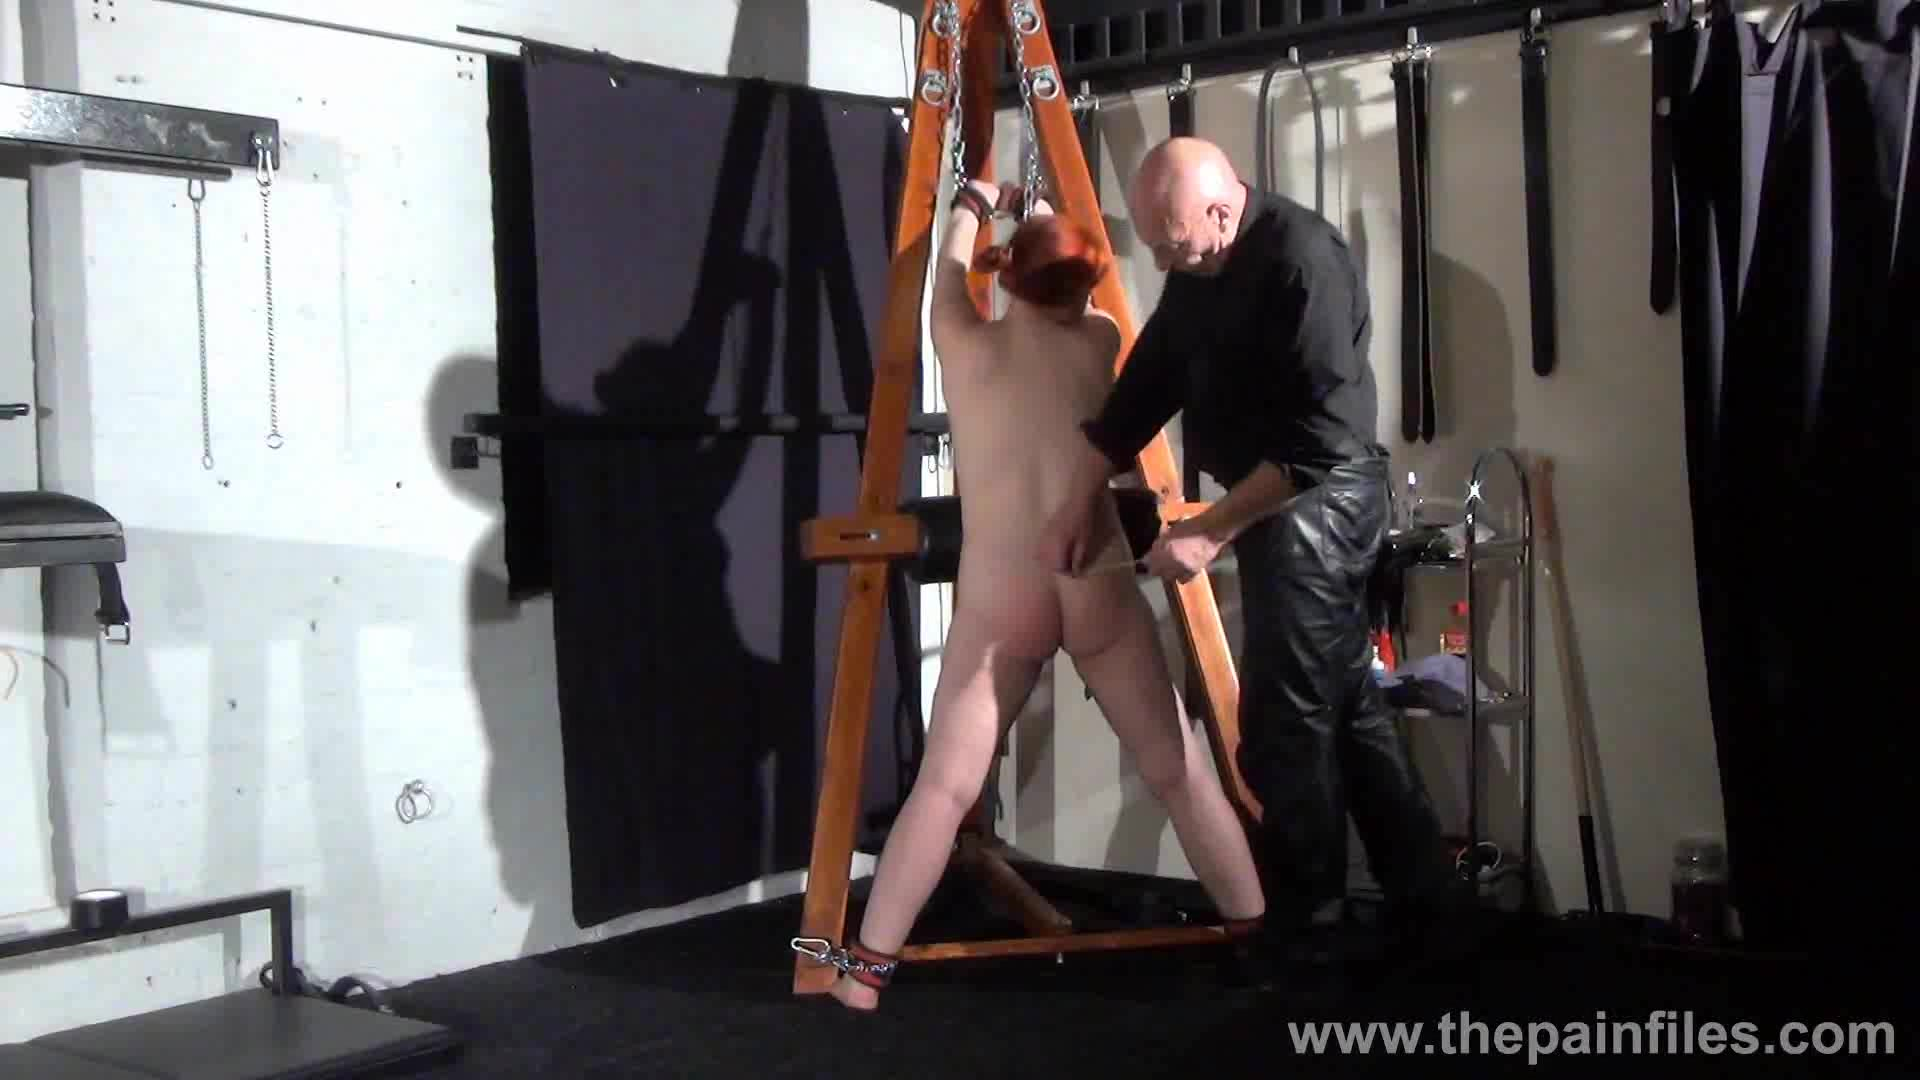 Video! Terrific Red headed she domination could find